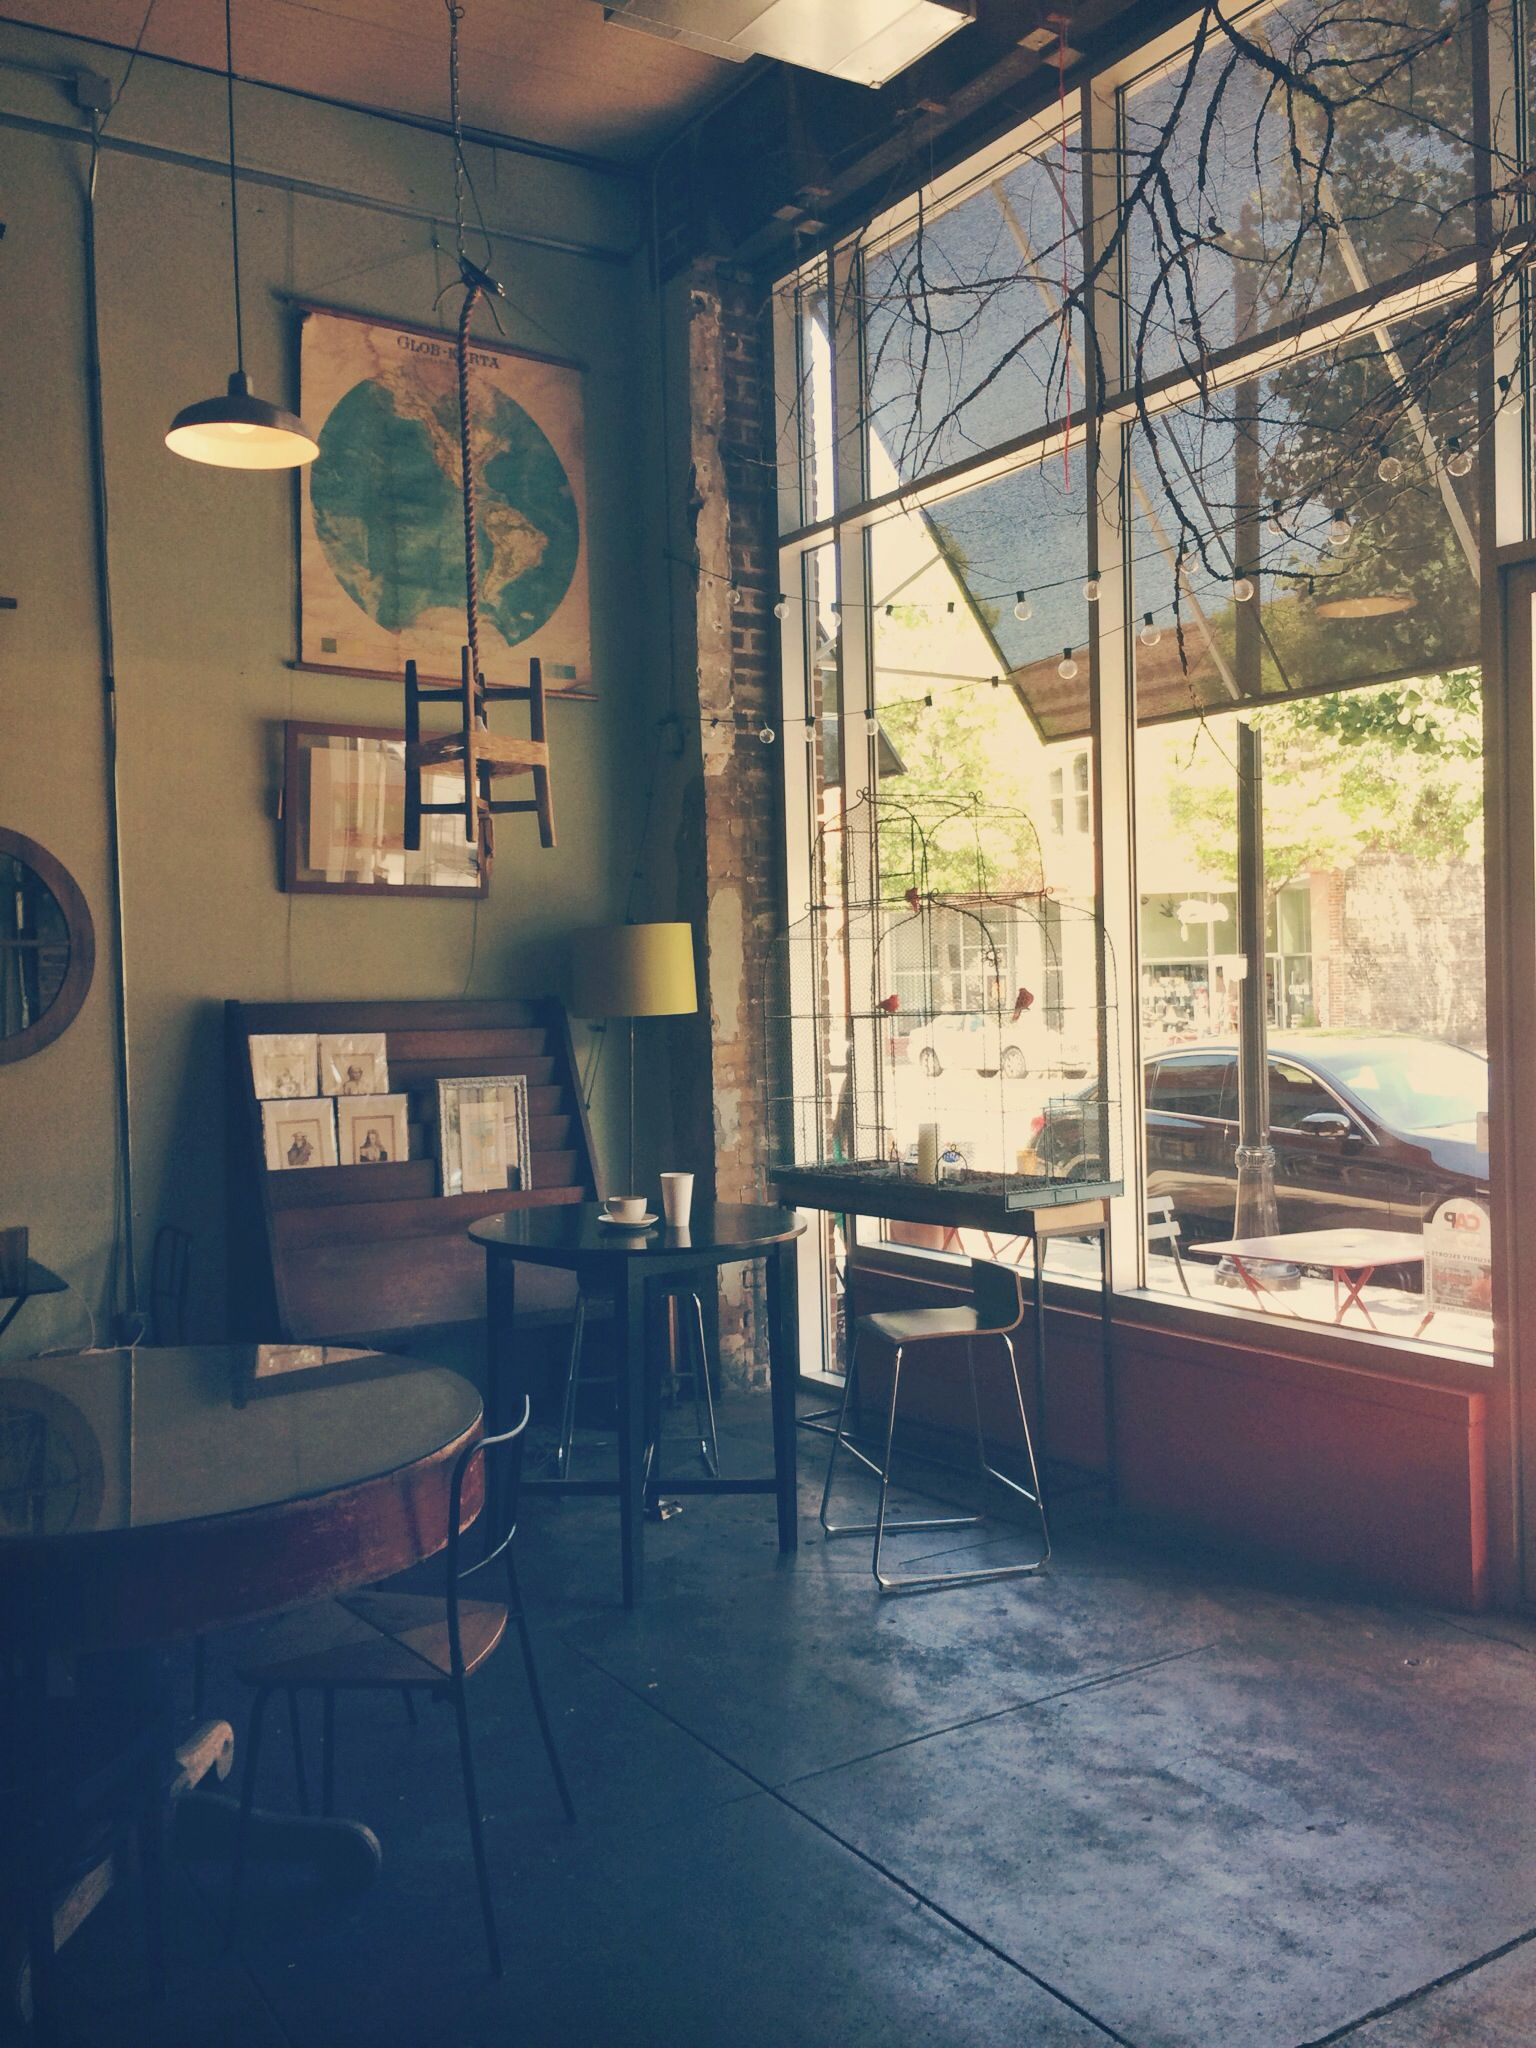 The Urban Standard In Downtown Birmingham Alabama Is A Most Try Amazing Coffee And Local Food Dream Spaces Birmingham Alabama Birmingham